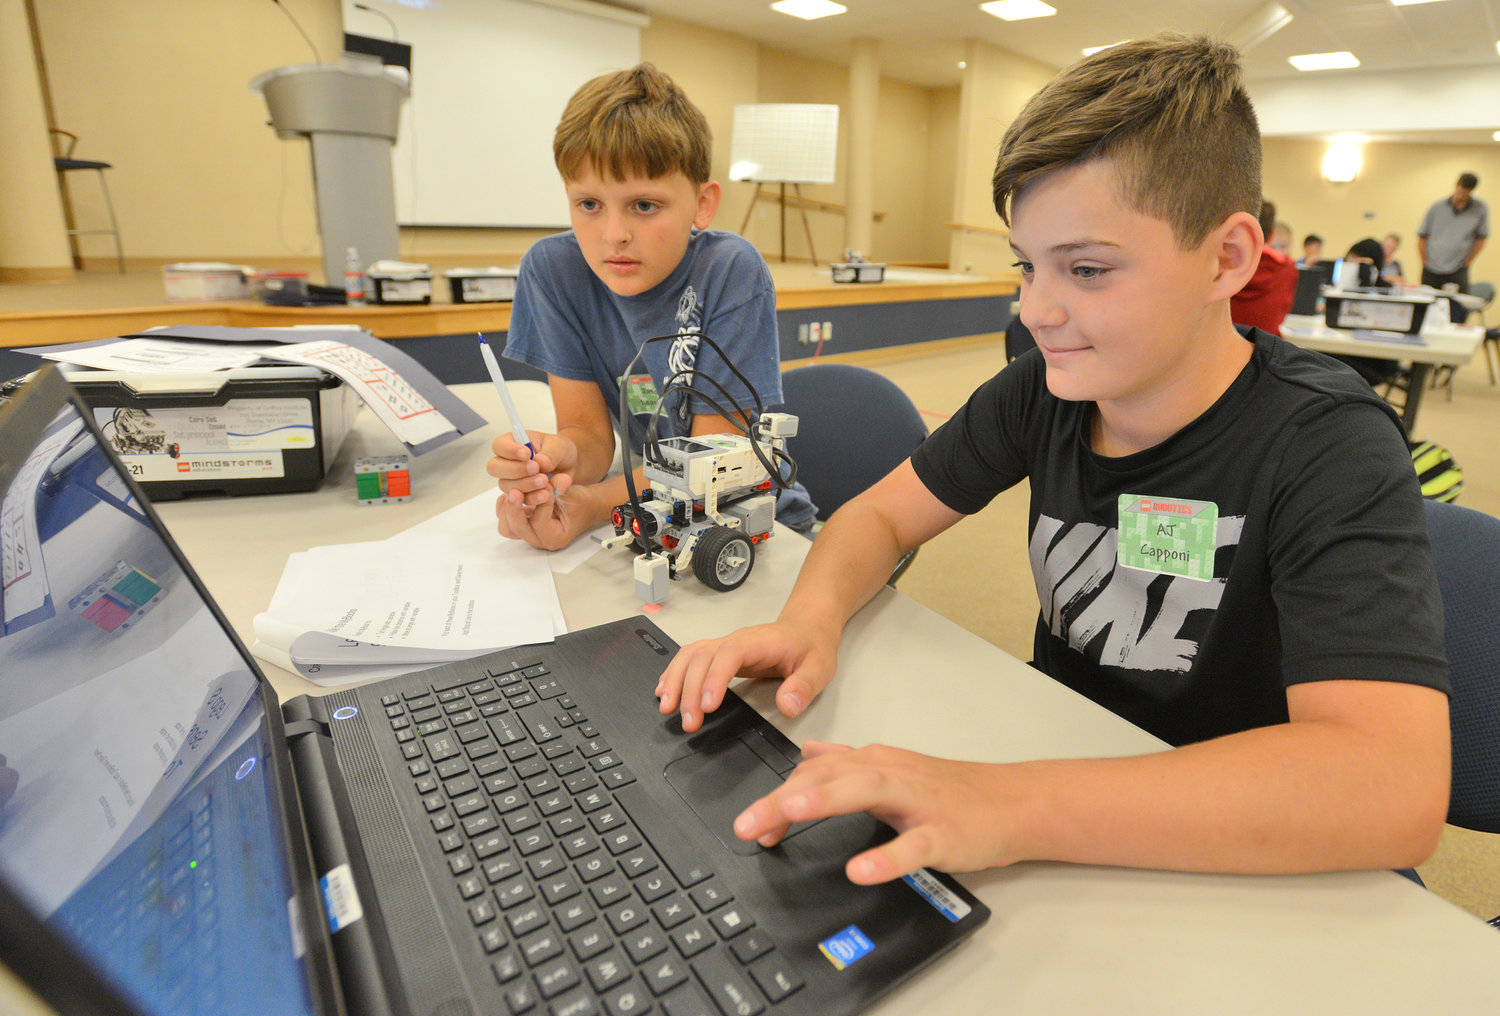 SETTING UP THEIR ROBOT — Clinton Elementary School students Jason Leonard and AJ Capponi work on programming their Lego robot at a STEM Outreach Program camp Wednesday at Griffiss Institute.